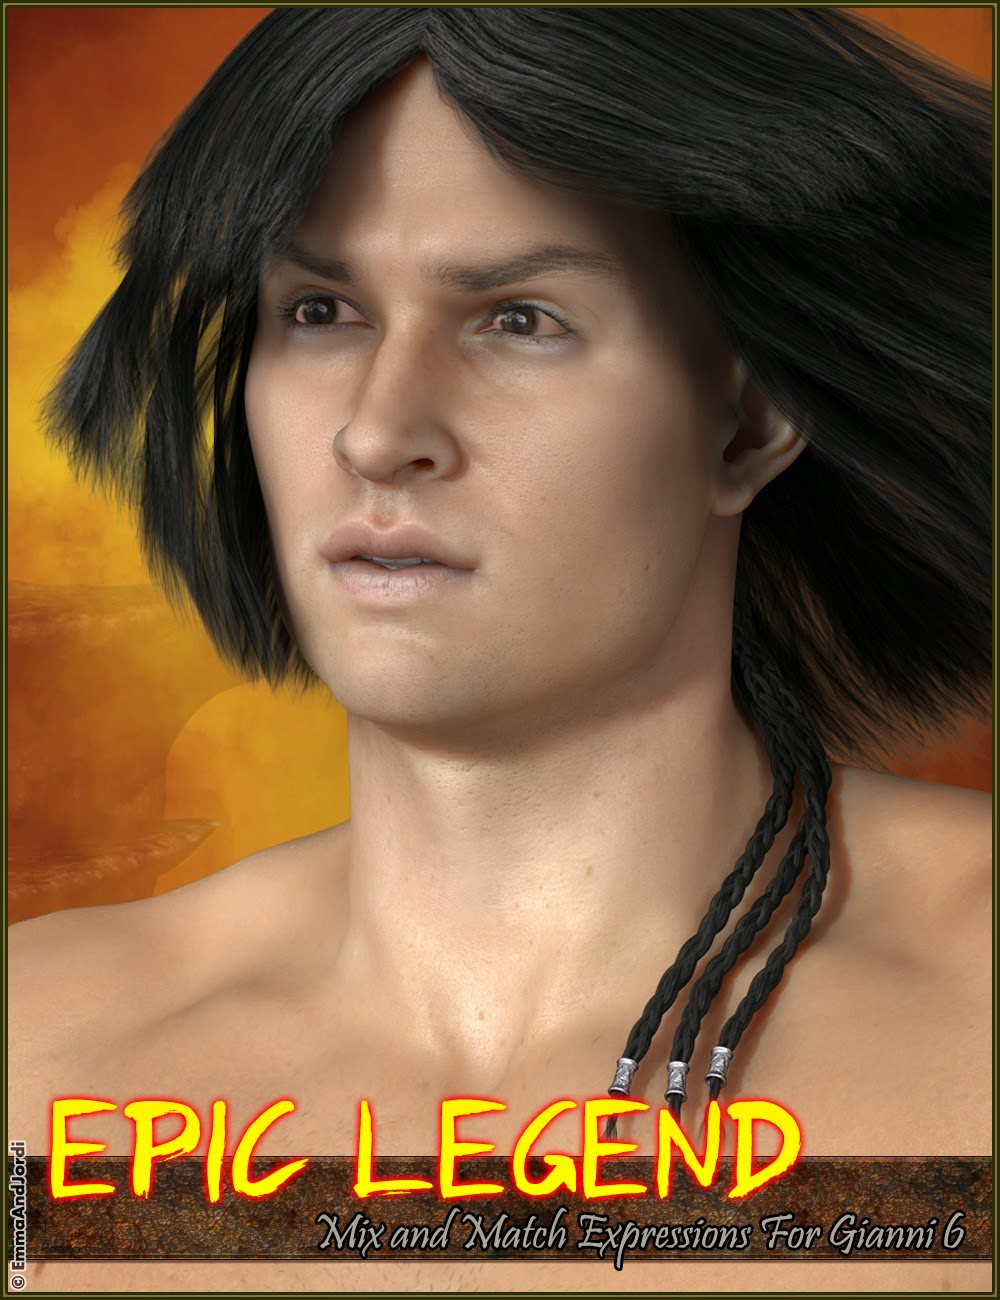 http://www.daz3d.com/epic-legend-mix-and-match-expressions-for-gianni-6